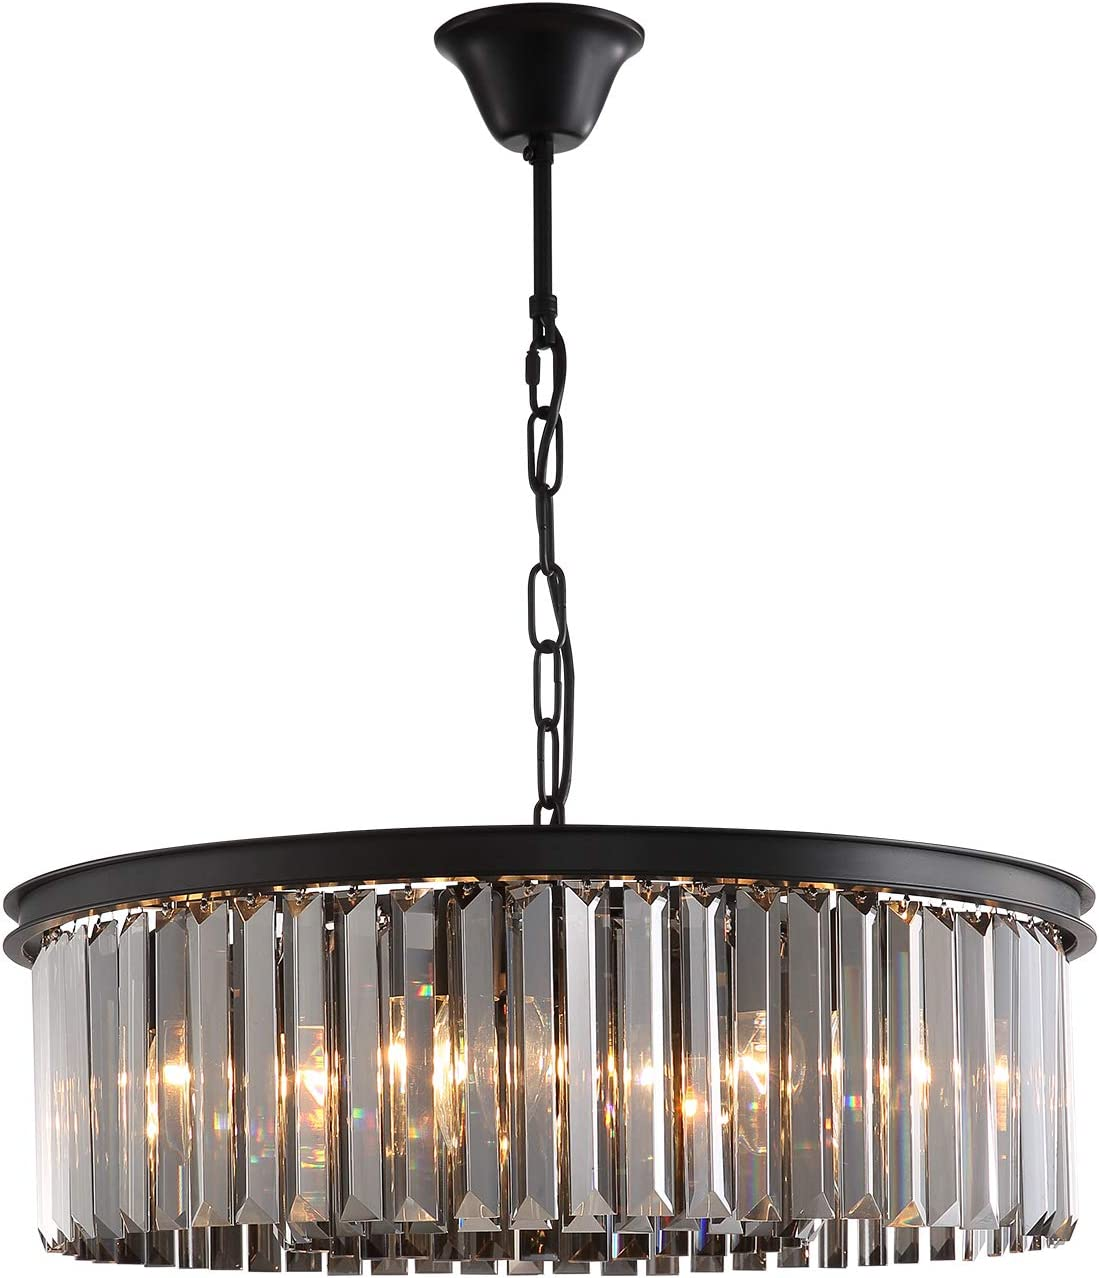 Moooni Modern Contemporary Max 59% OFFicial store OFF Crystal Penda Over Chandeliers Island